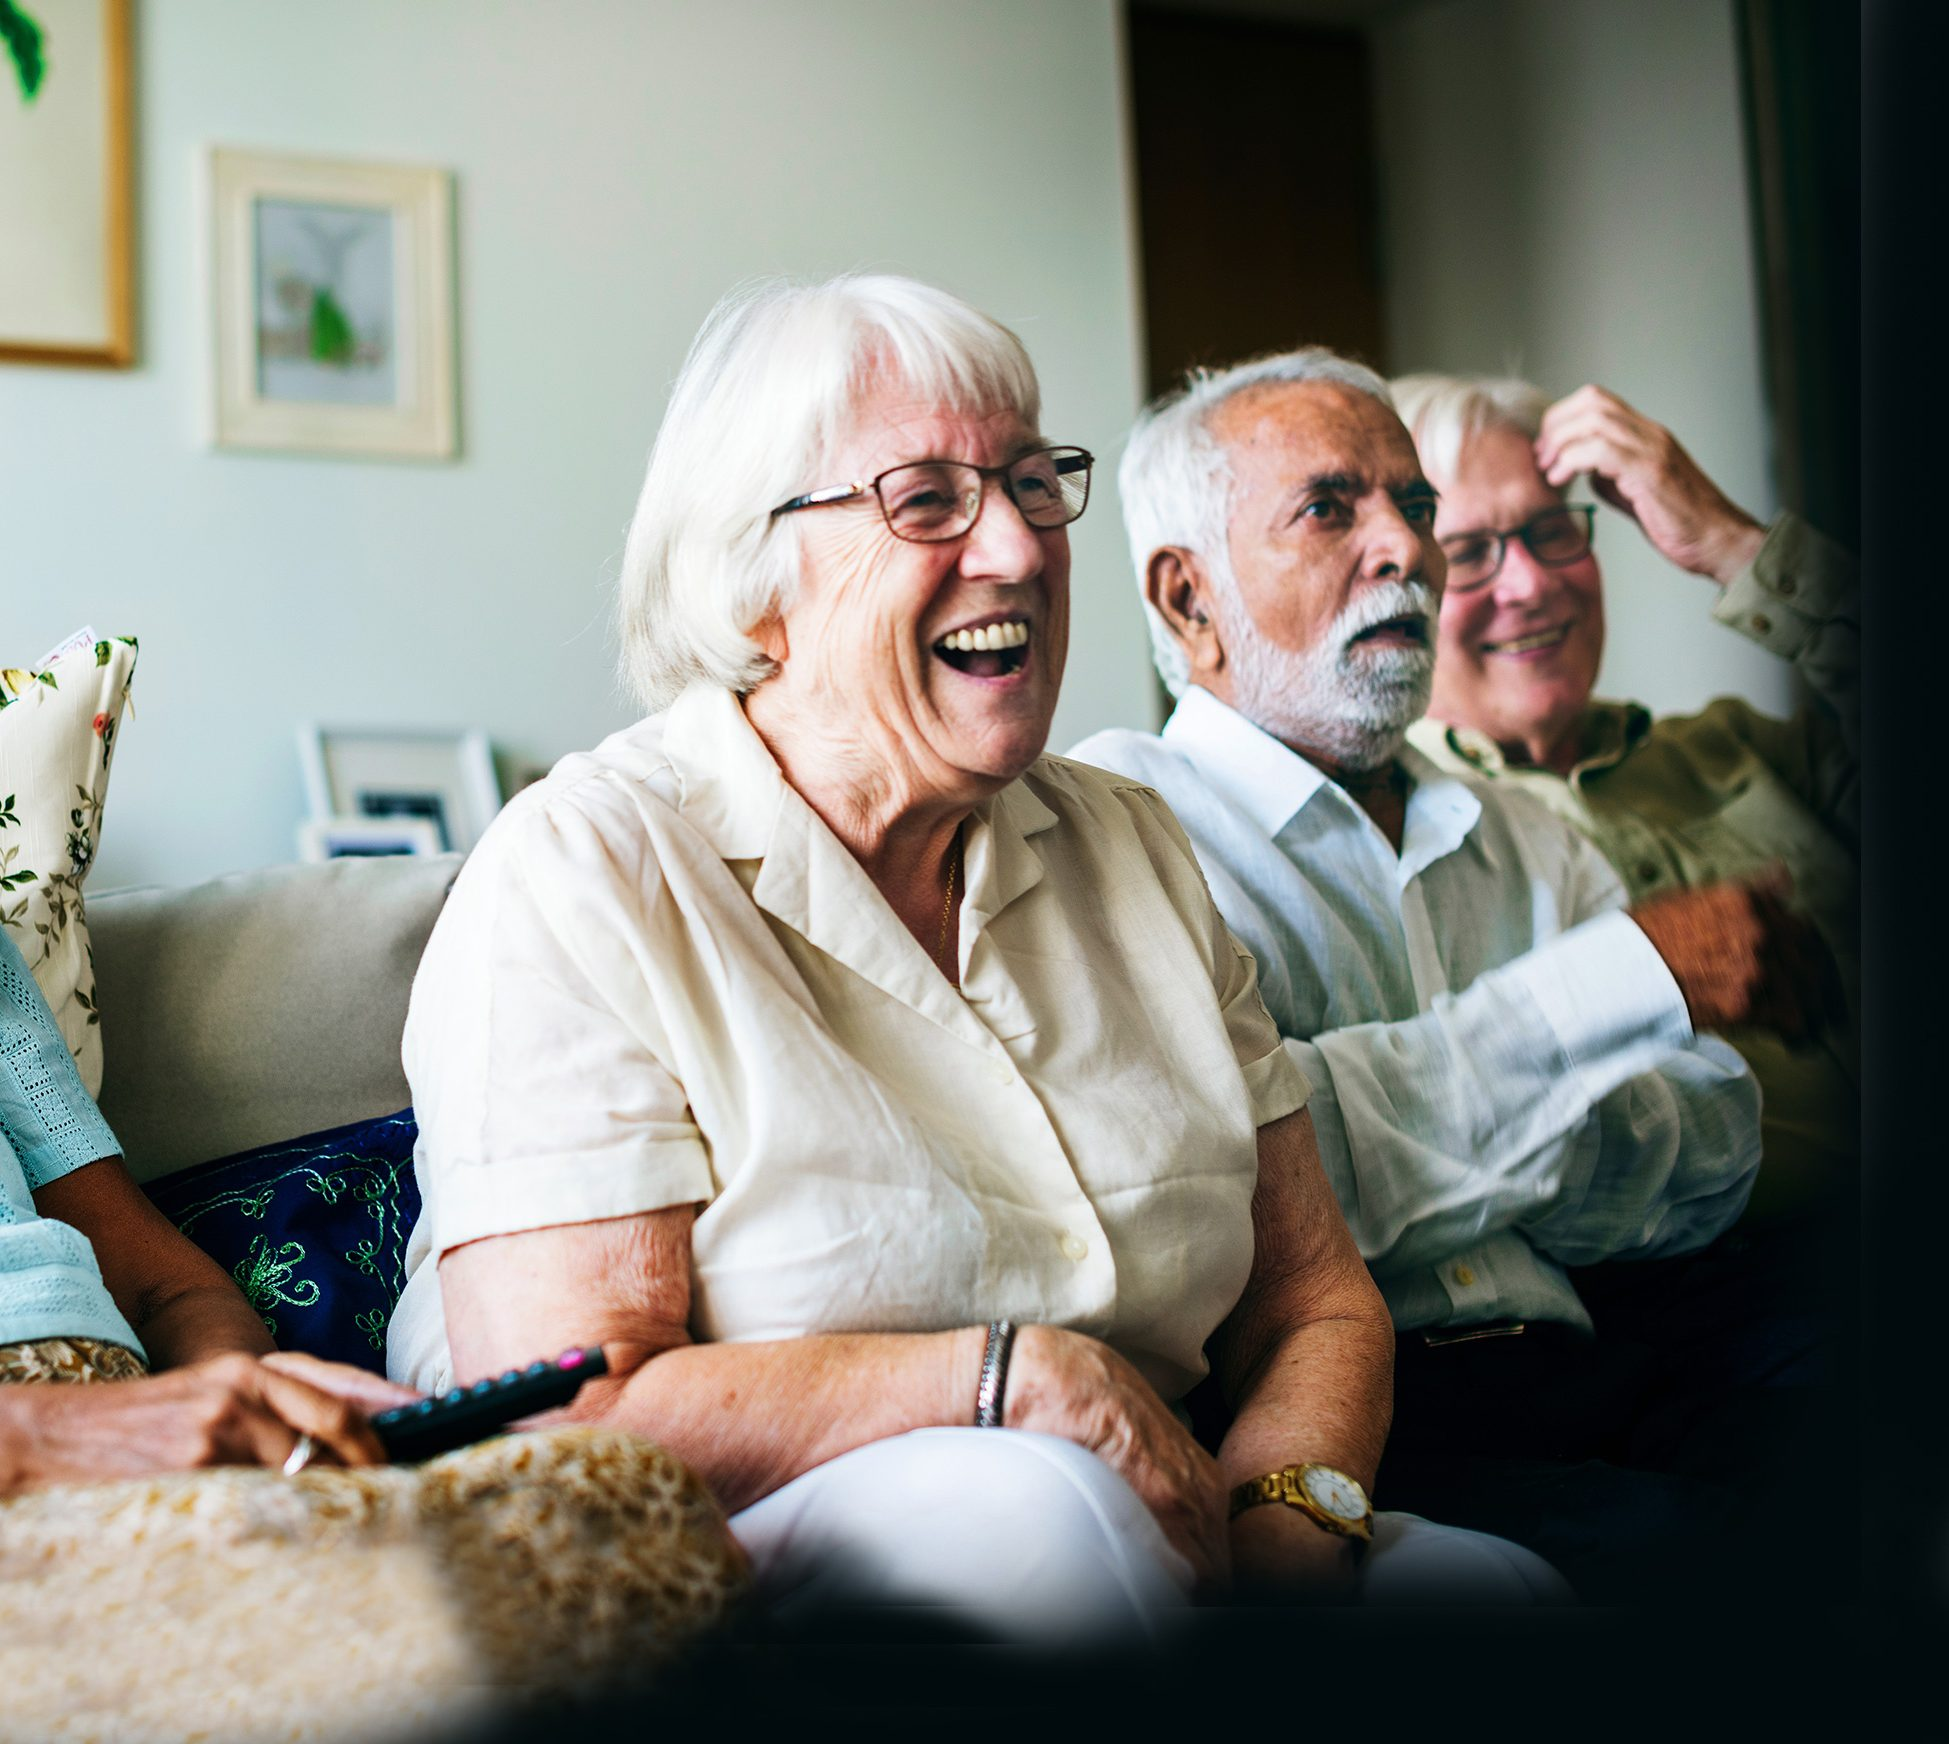 Pensioner in home laughing with others watching TV